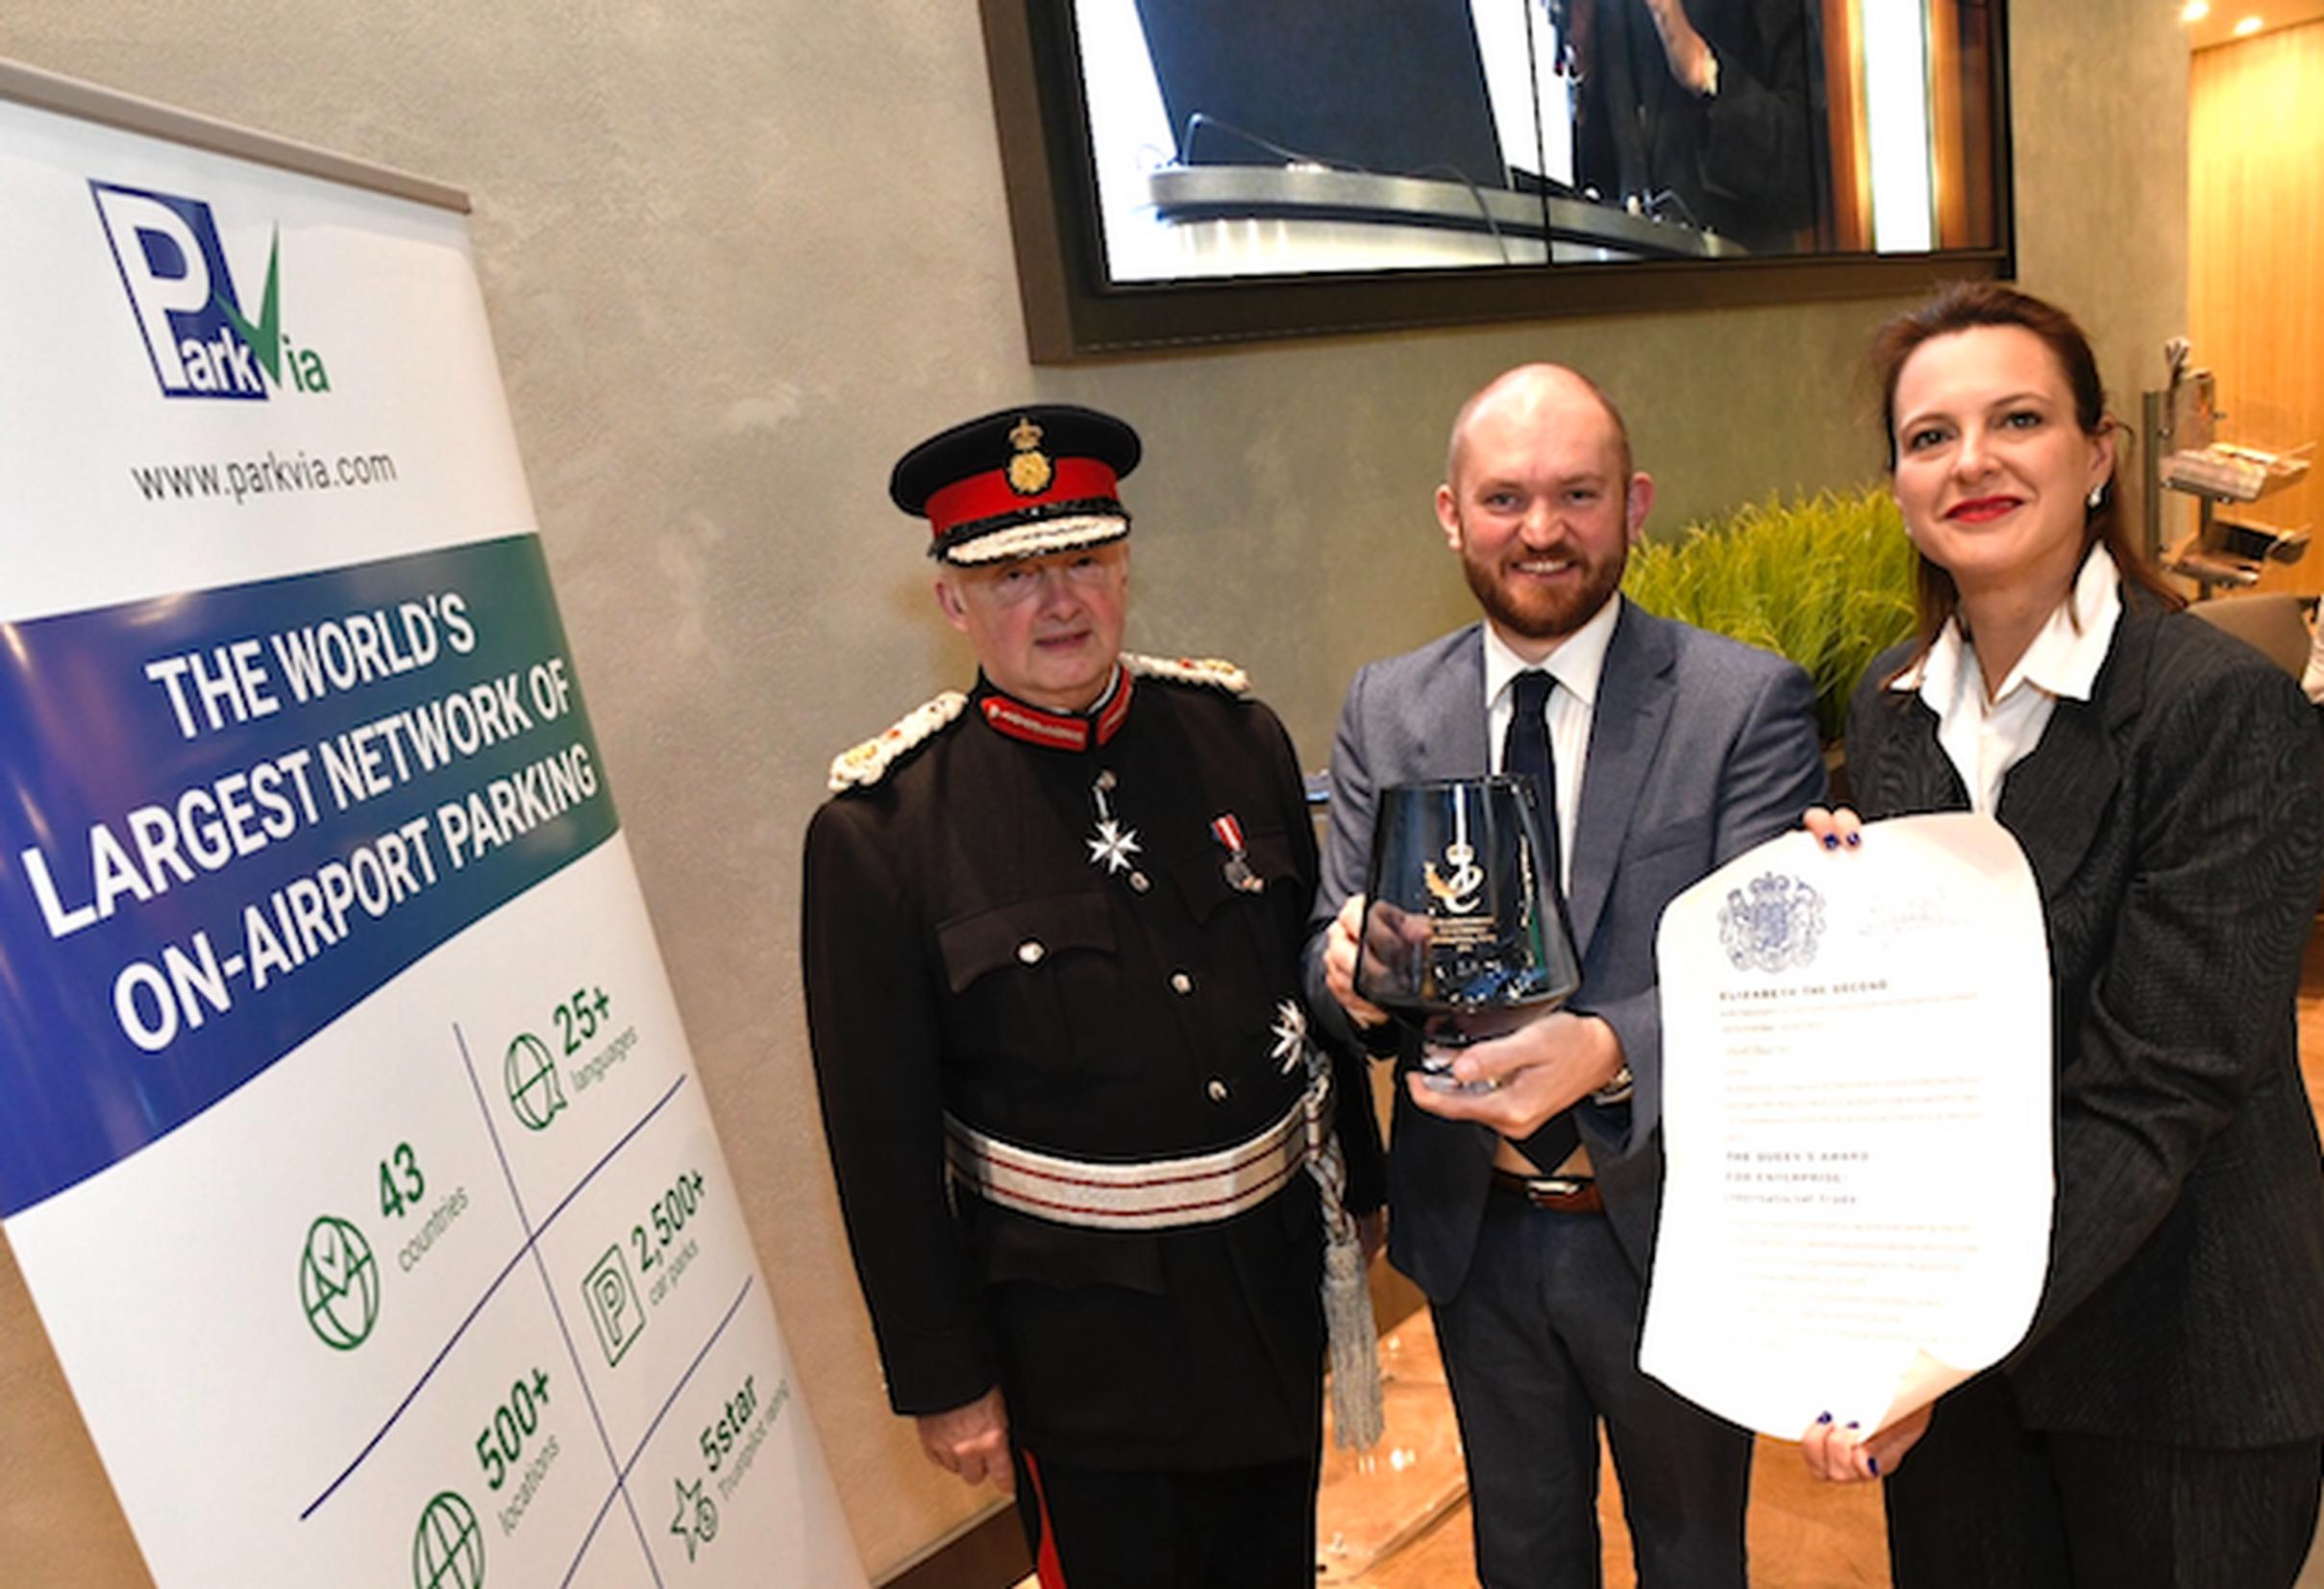 ParkVia receives second Queen's Award